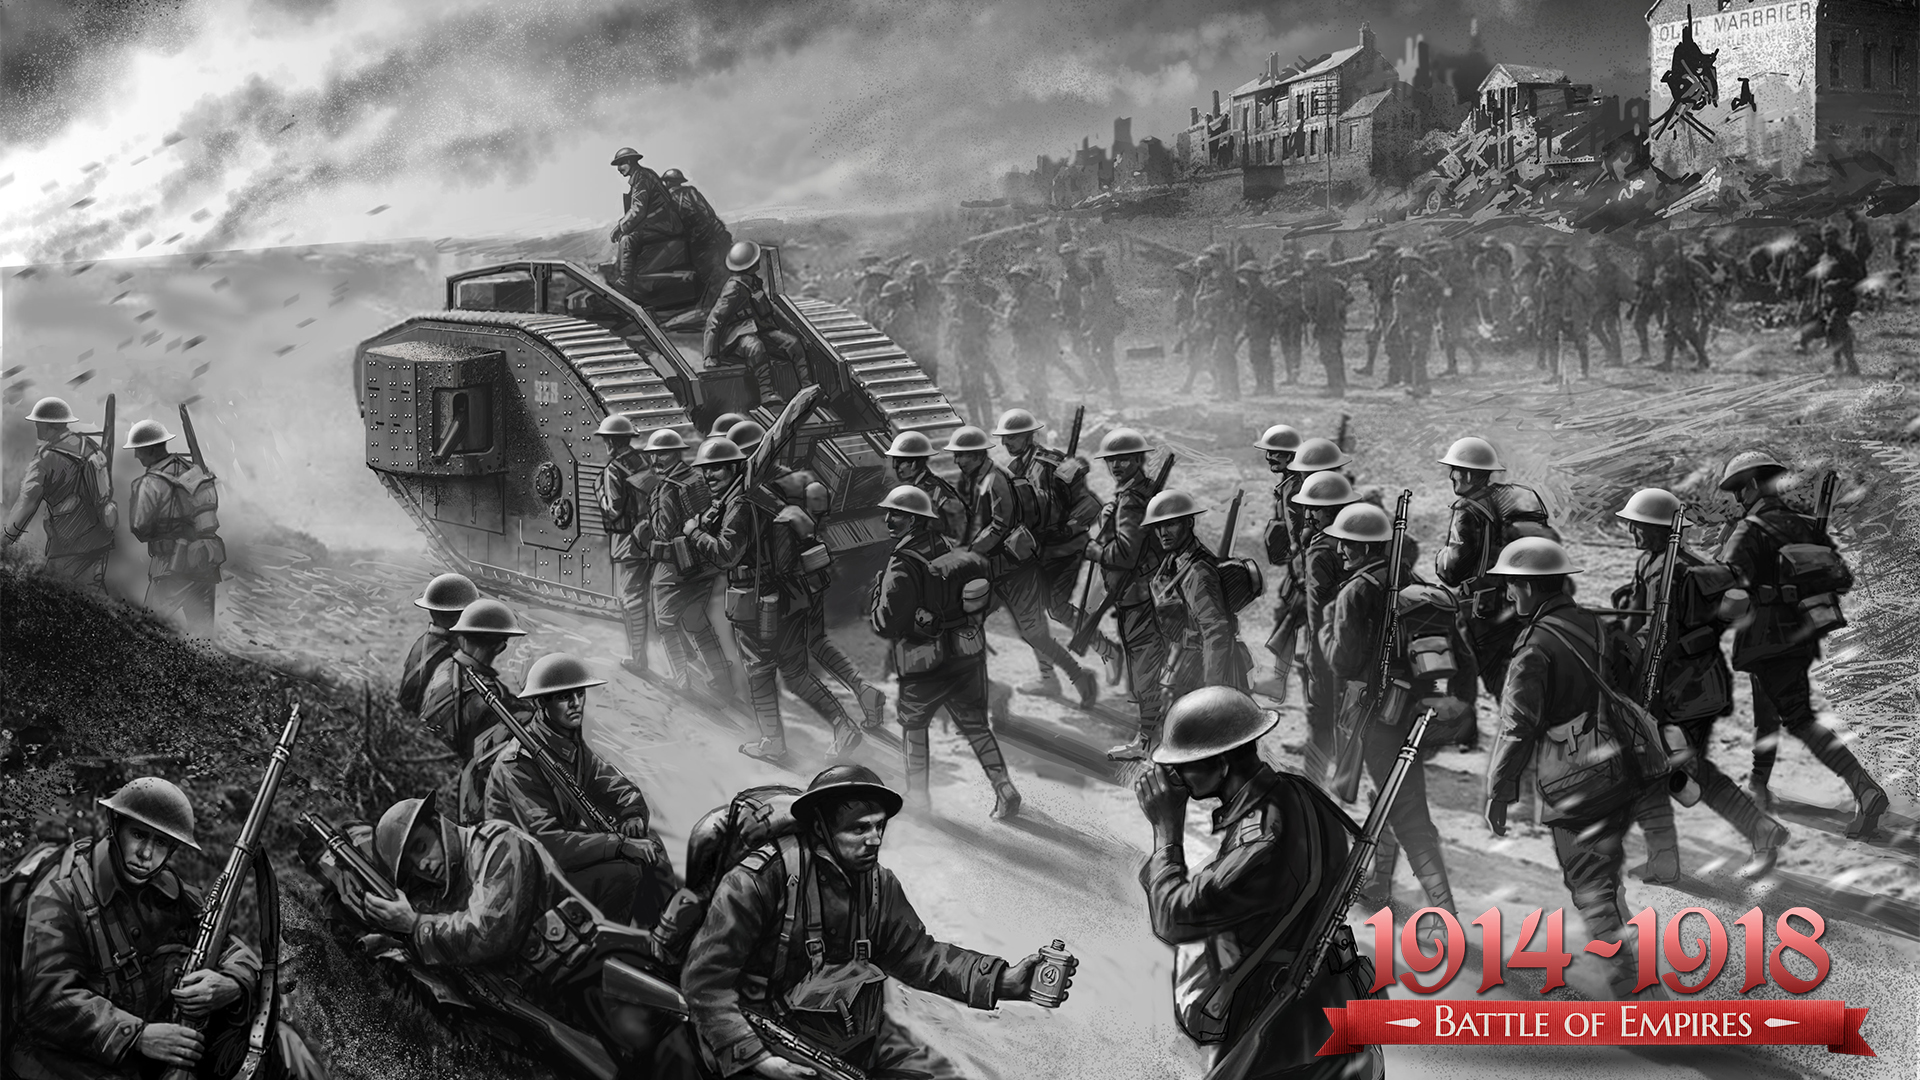 BATTLE OF EMPIRES : 1914 1918 - REAL WAR